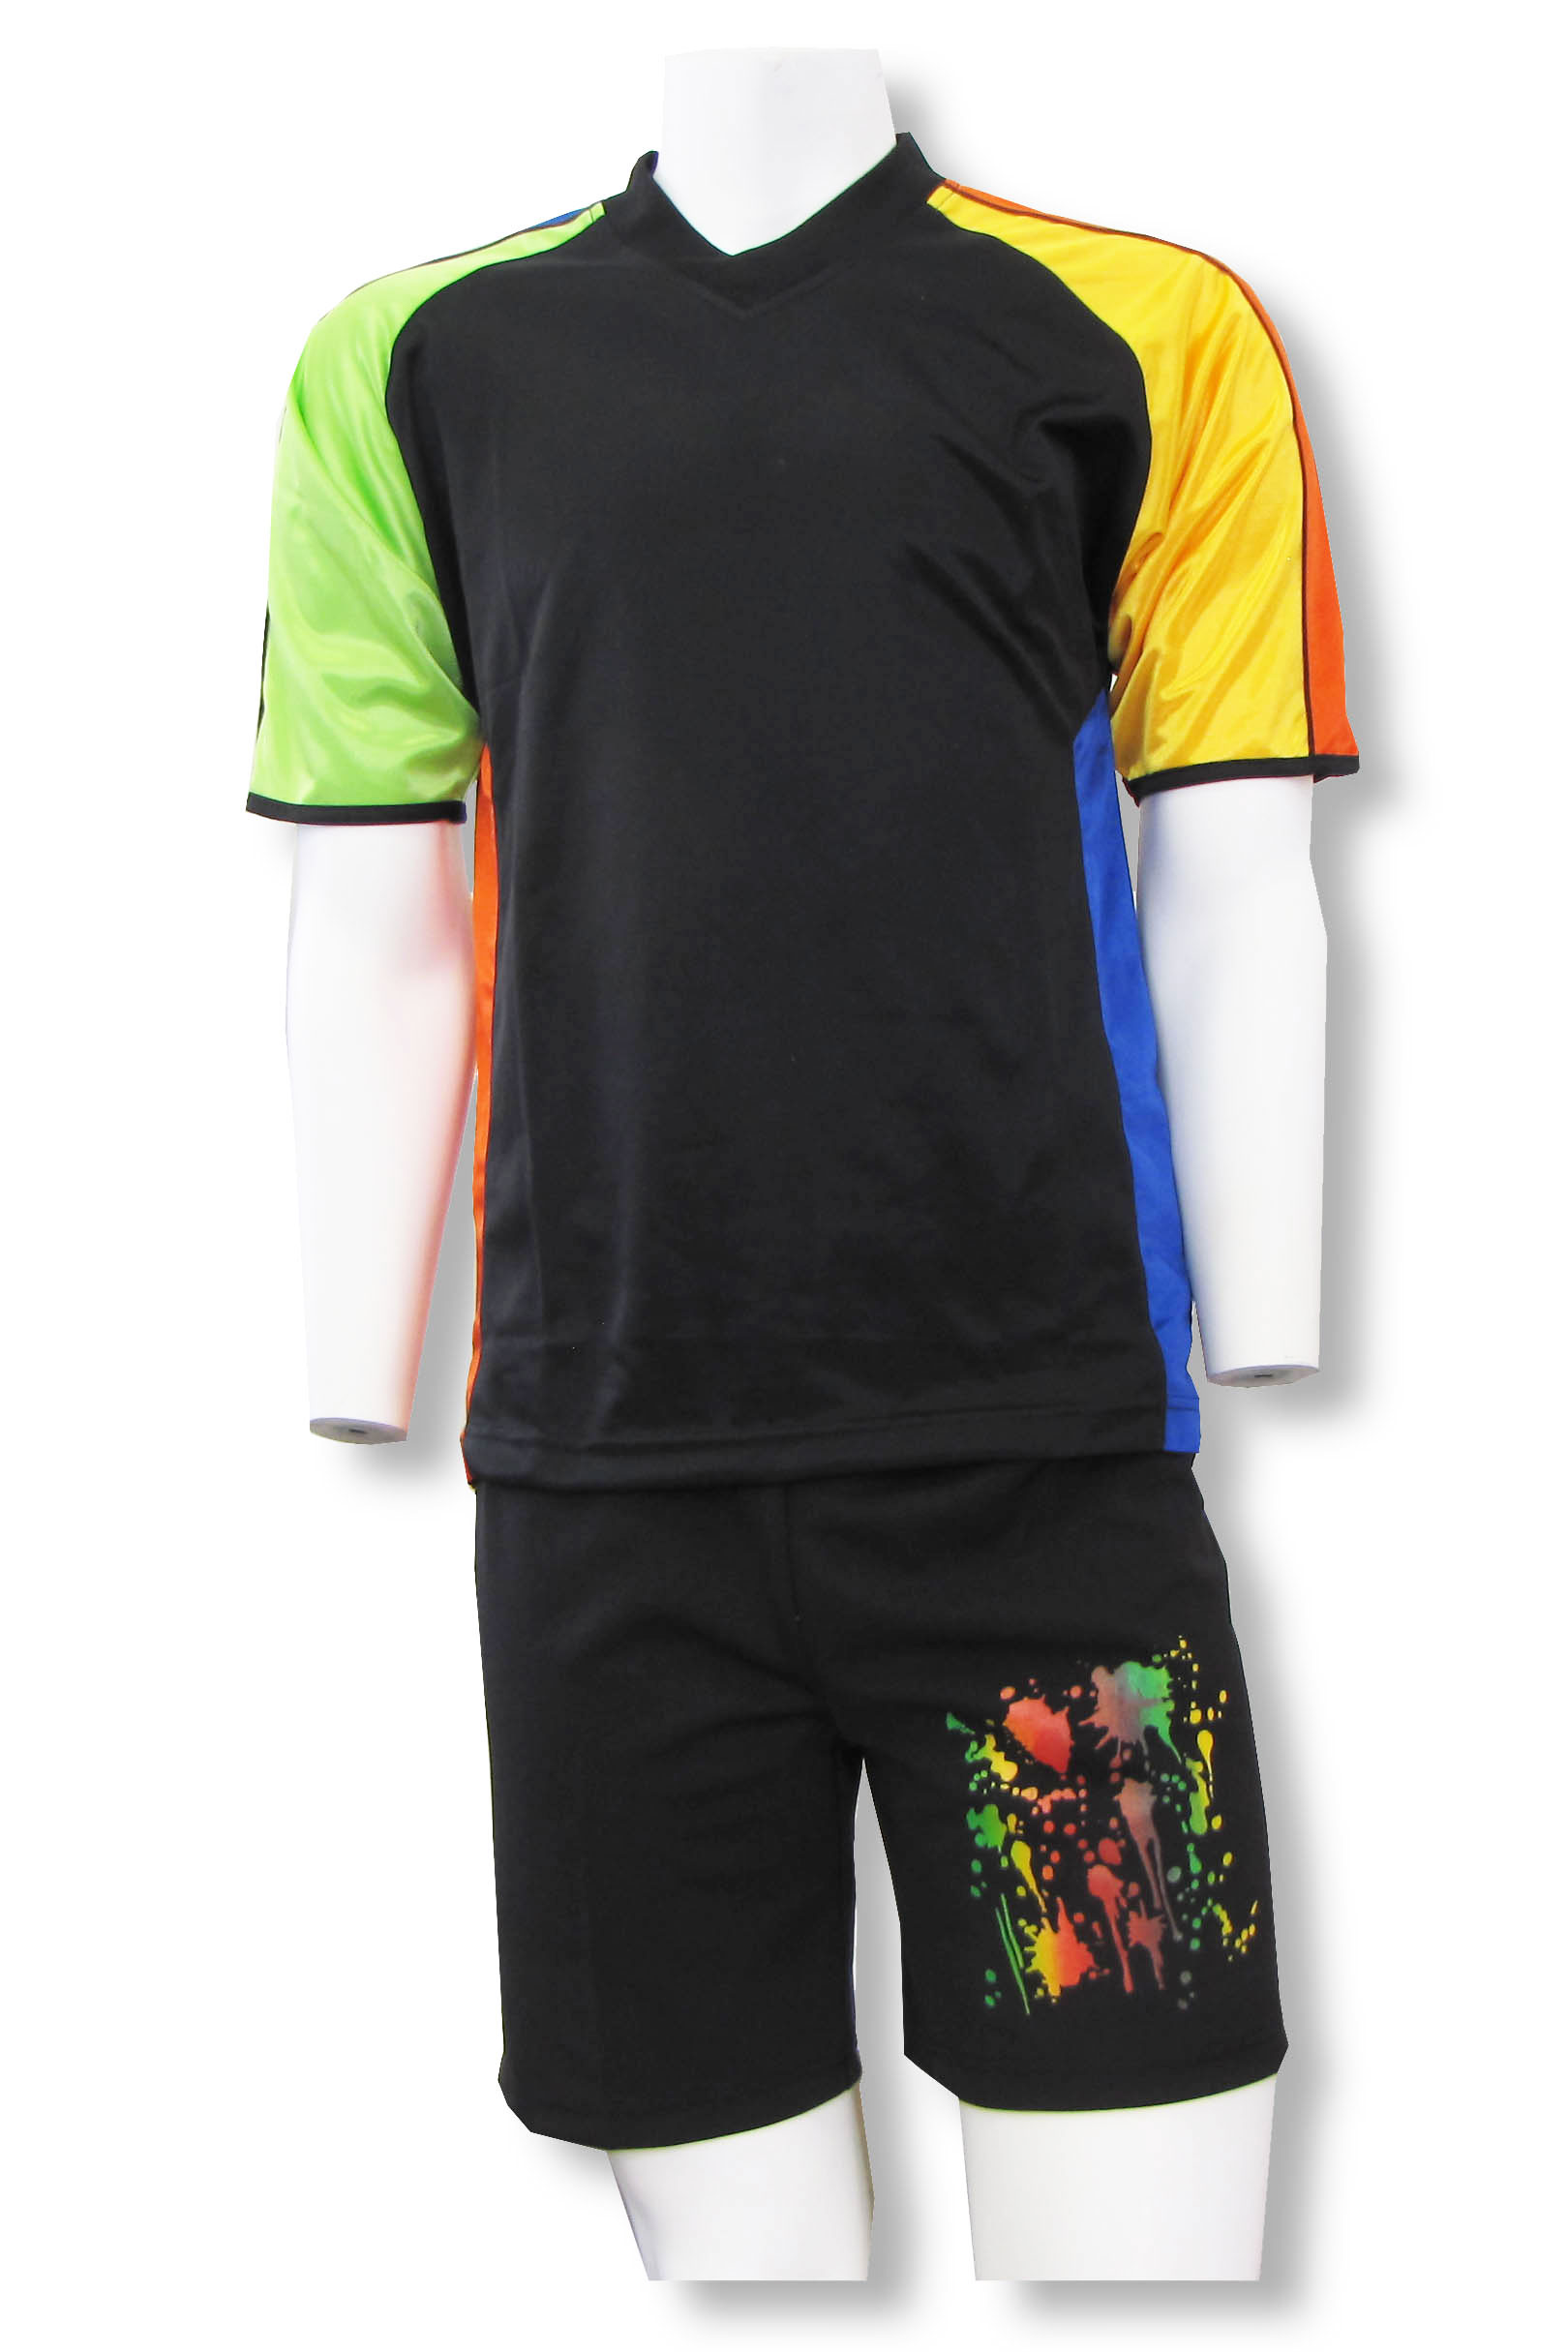 Blast short sleeve soccer goalie jersey-shorts set by Code Four Athletics